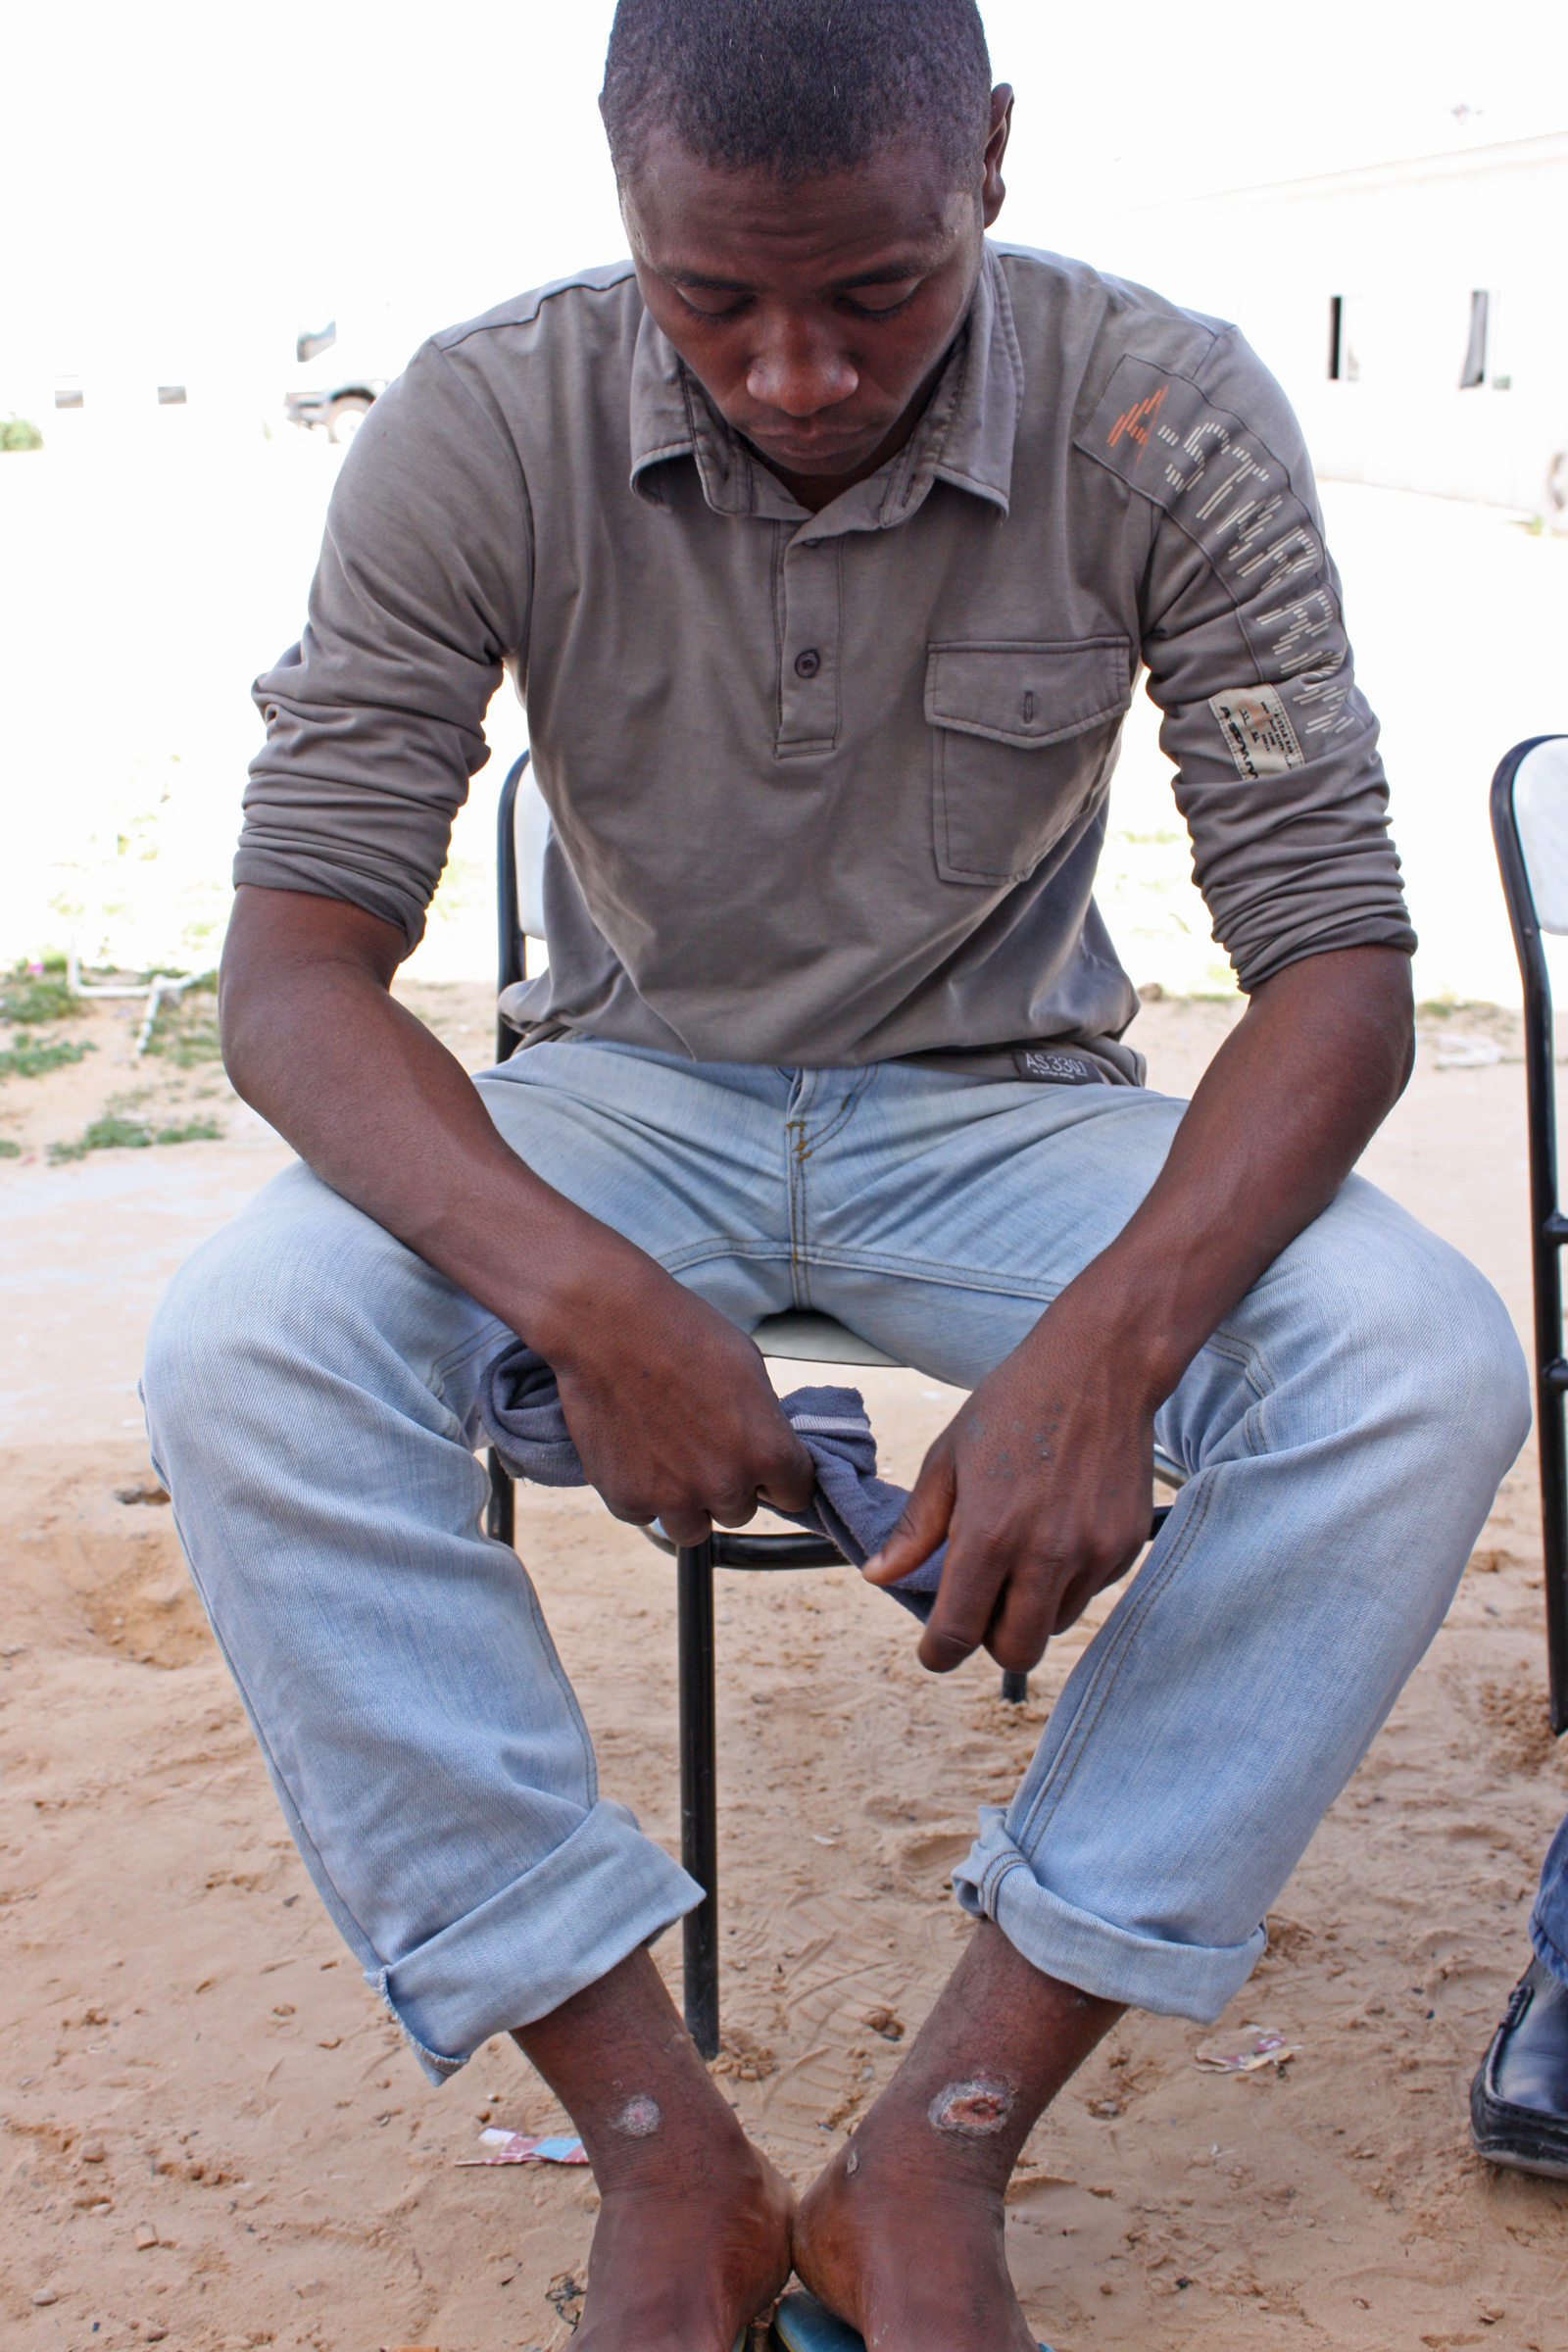 Suheil Mohammed Sa'ad Abu Sharide, 22, of Tawergha, shows the scars on his ankles from metal shackles he was forced to wear during detention by Misratan rebels after the Libyan civil war of 2011. (Airport Road / Turkish Compound site in Tripoli for displa